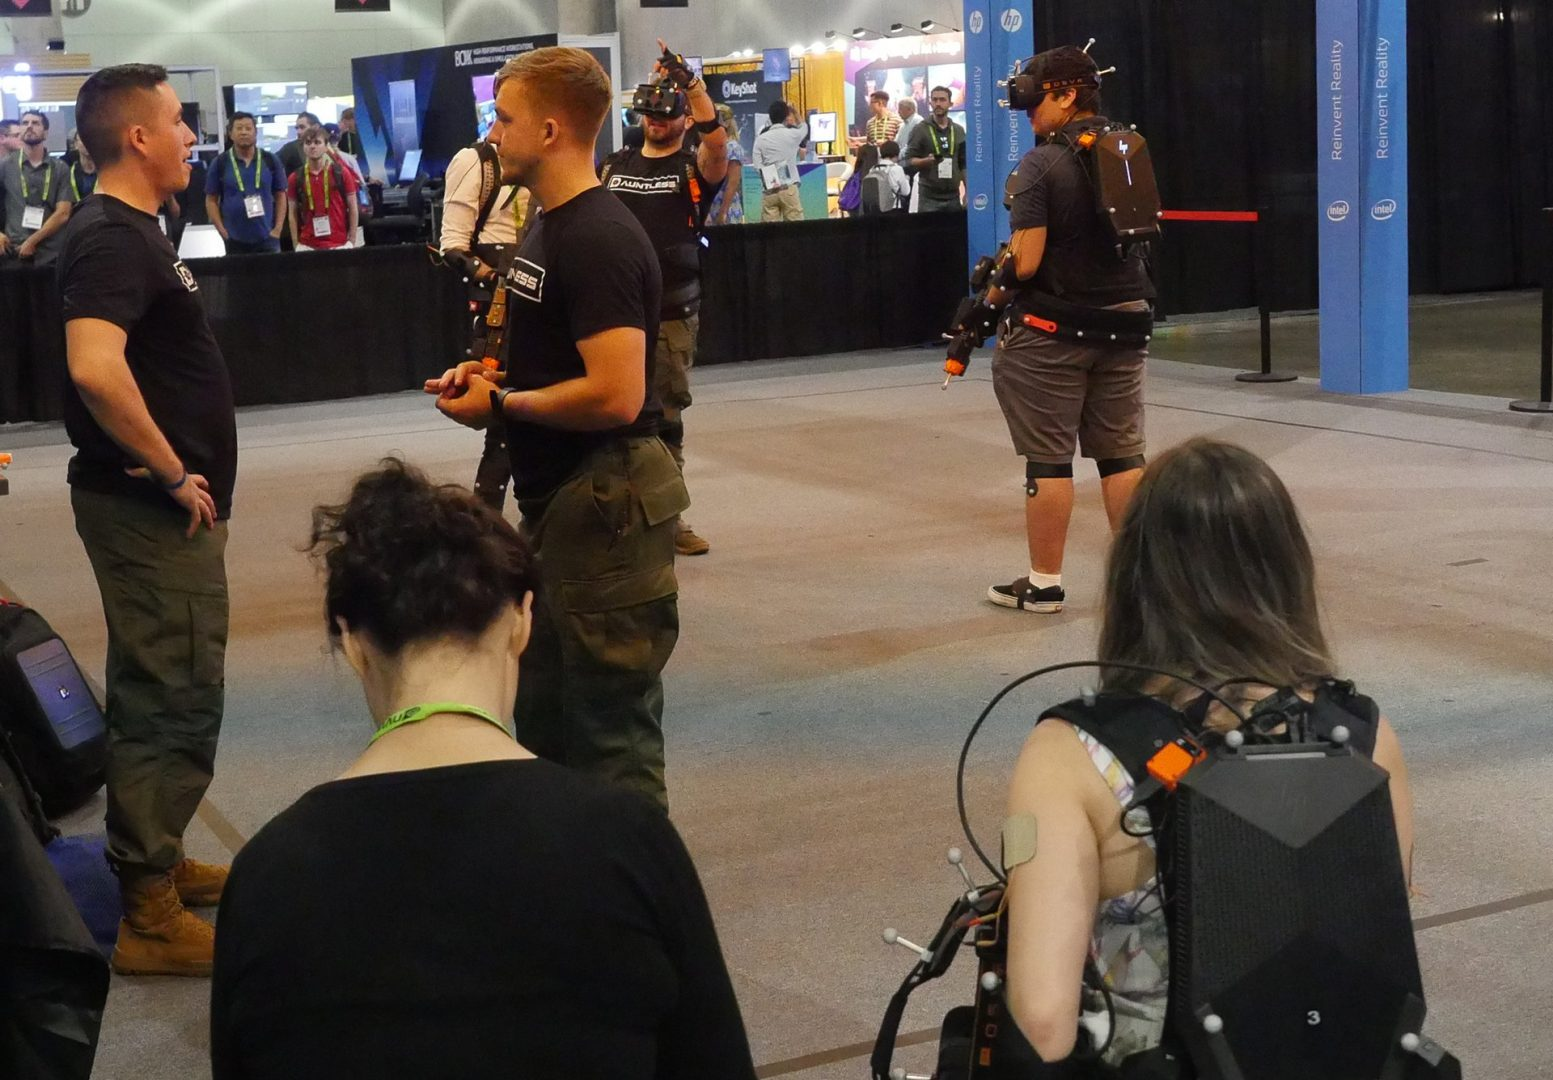 Motion Reality's Dauntless VR simulation solution gave SIGGRAPH 2017 attendees a fully immersive military virtual reality training experience in StudioXperience